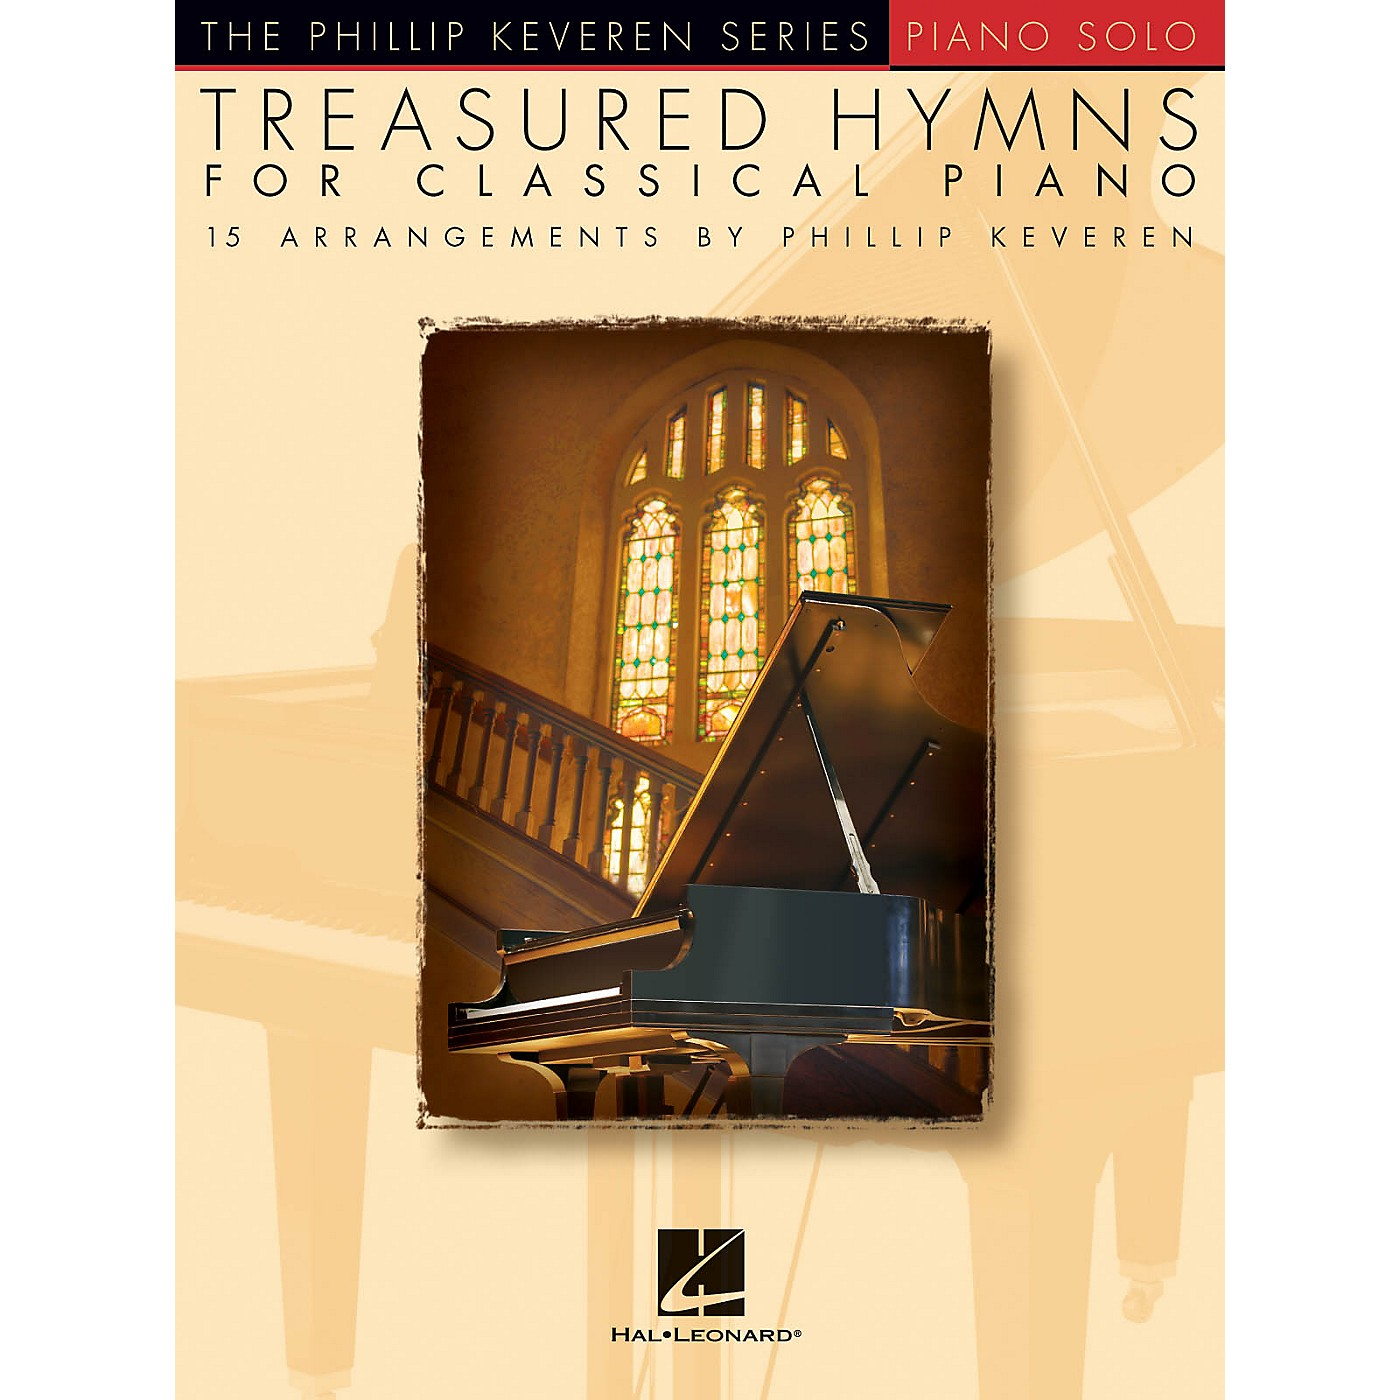 Hal Leonard Treasured Hymns for Classical Piano - The Phillip Keveren Series Piano Solo Songbook thumbnail